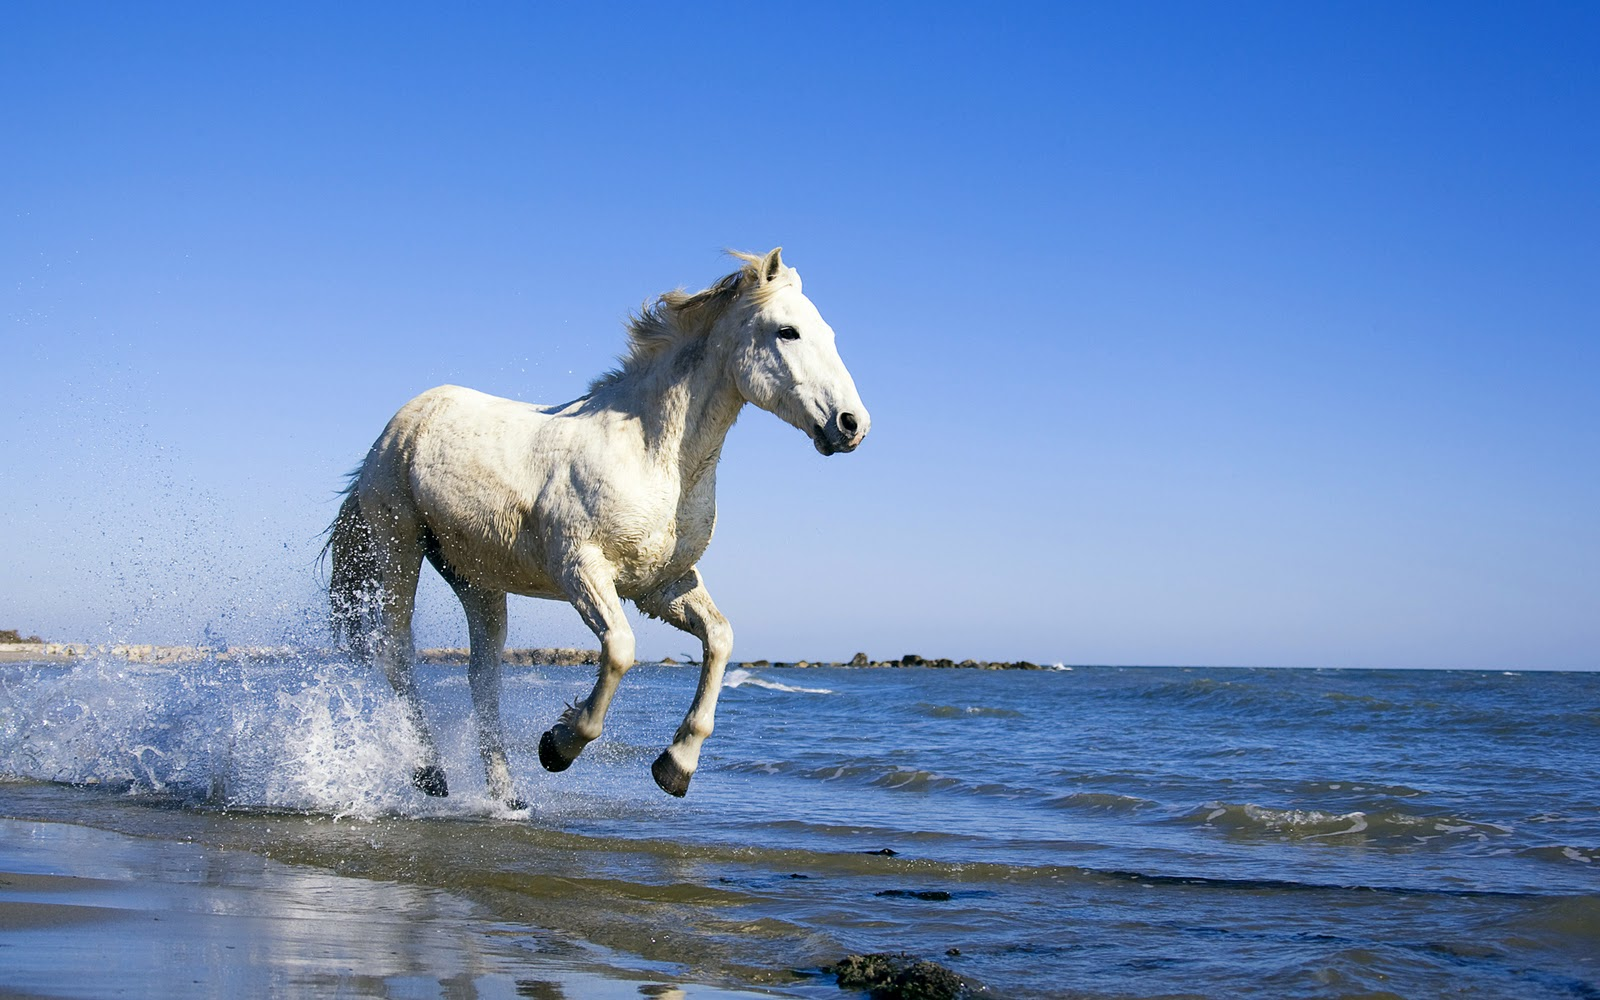 Great   Wallpaper Horse Lightning - Horses+Wallpapers+1920x1200  Perfect Image Reference_95839.jpg